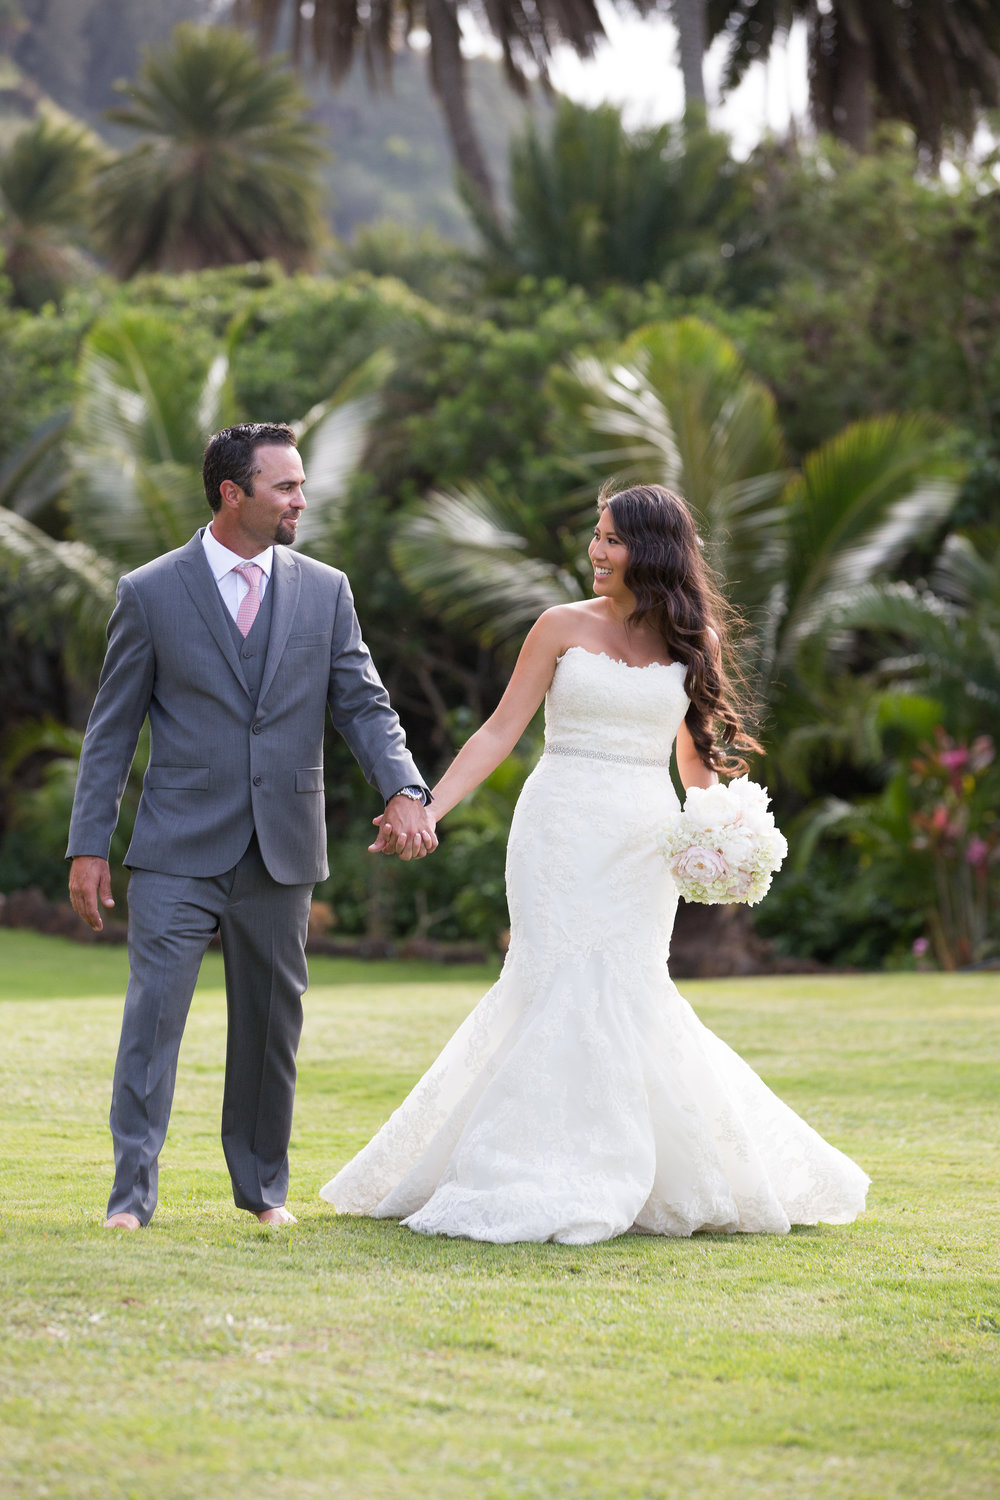 david kim photography oahu wedding 8.jpg